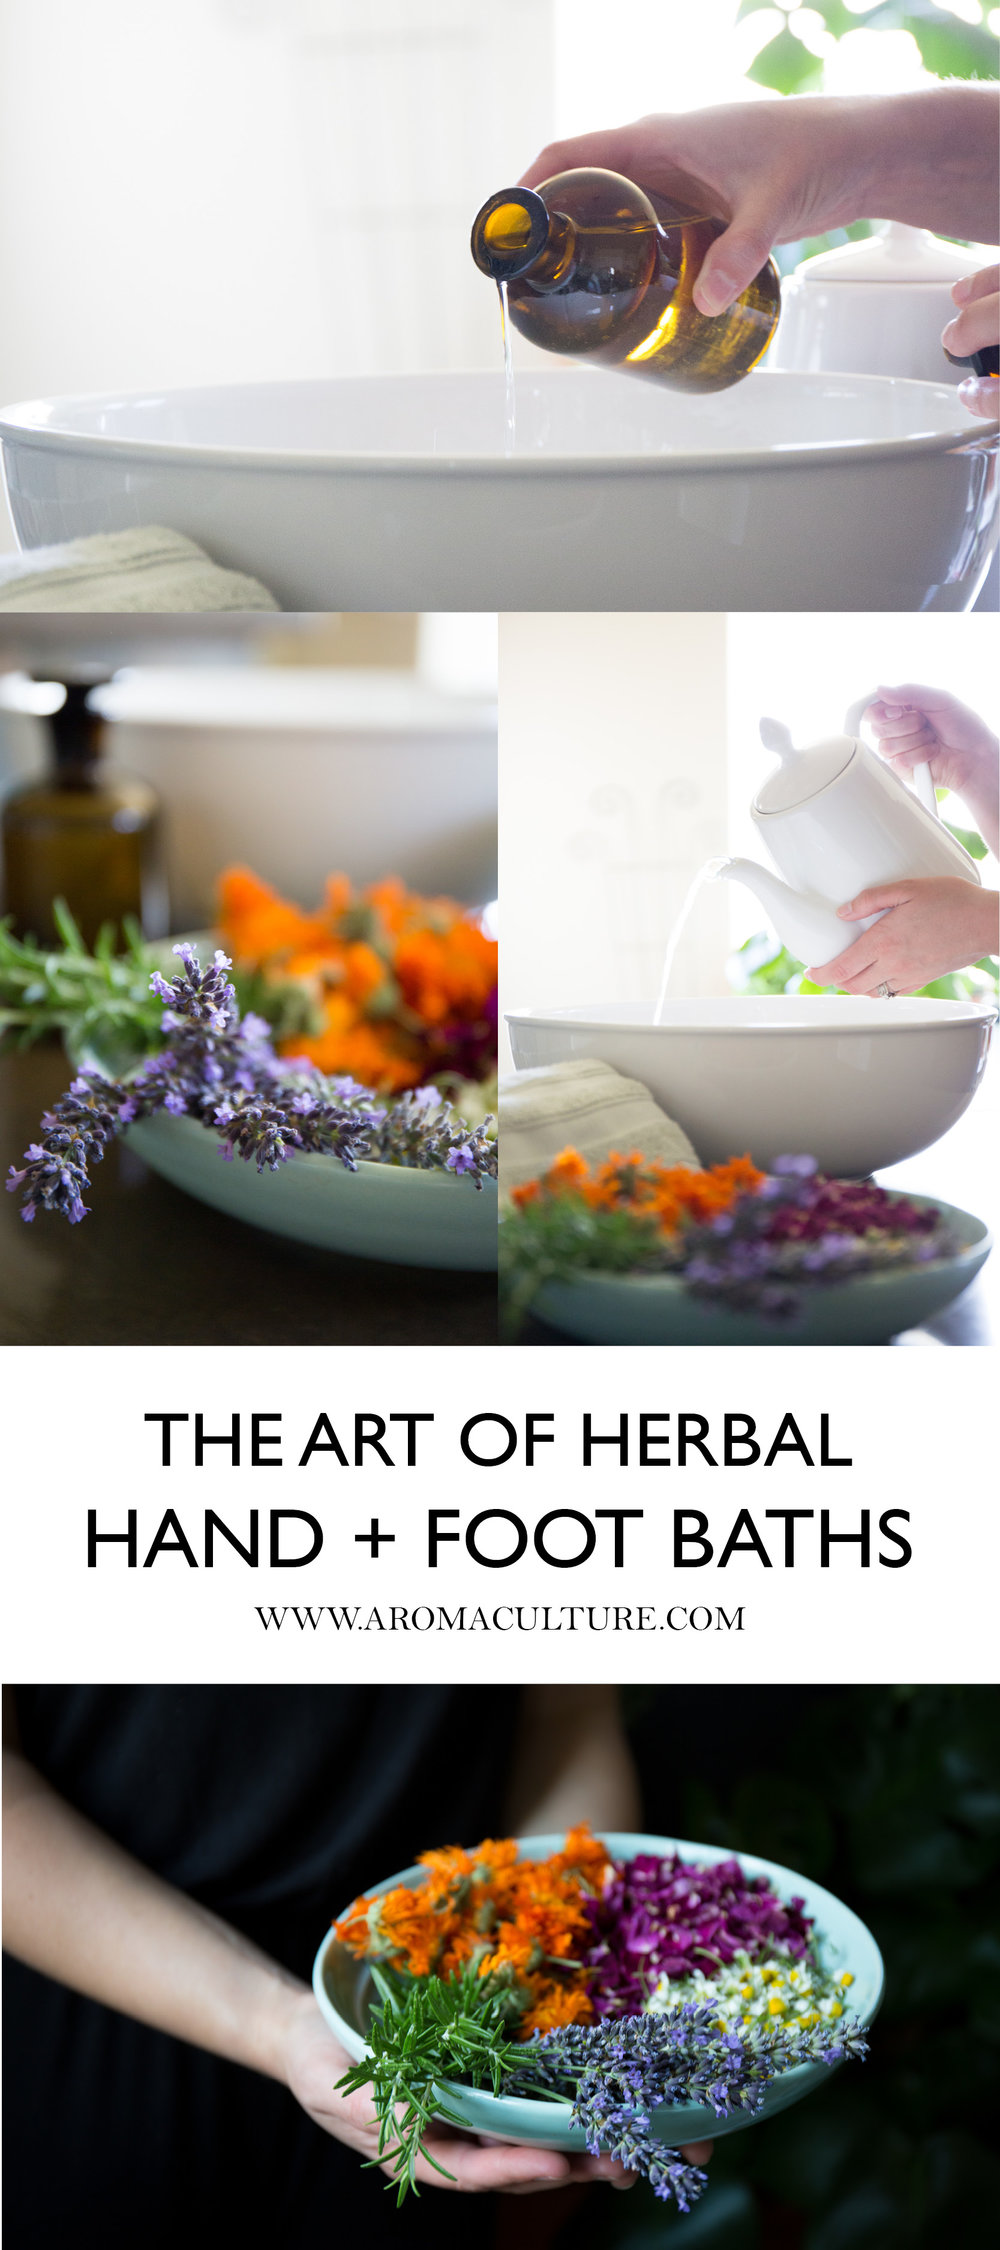 HERBAL HAND AND FOOT BATHS BY AROMACULTURE.jpg